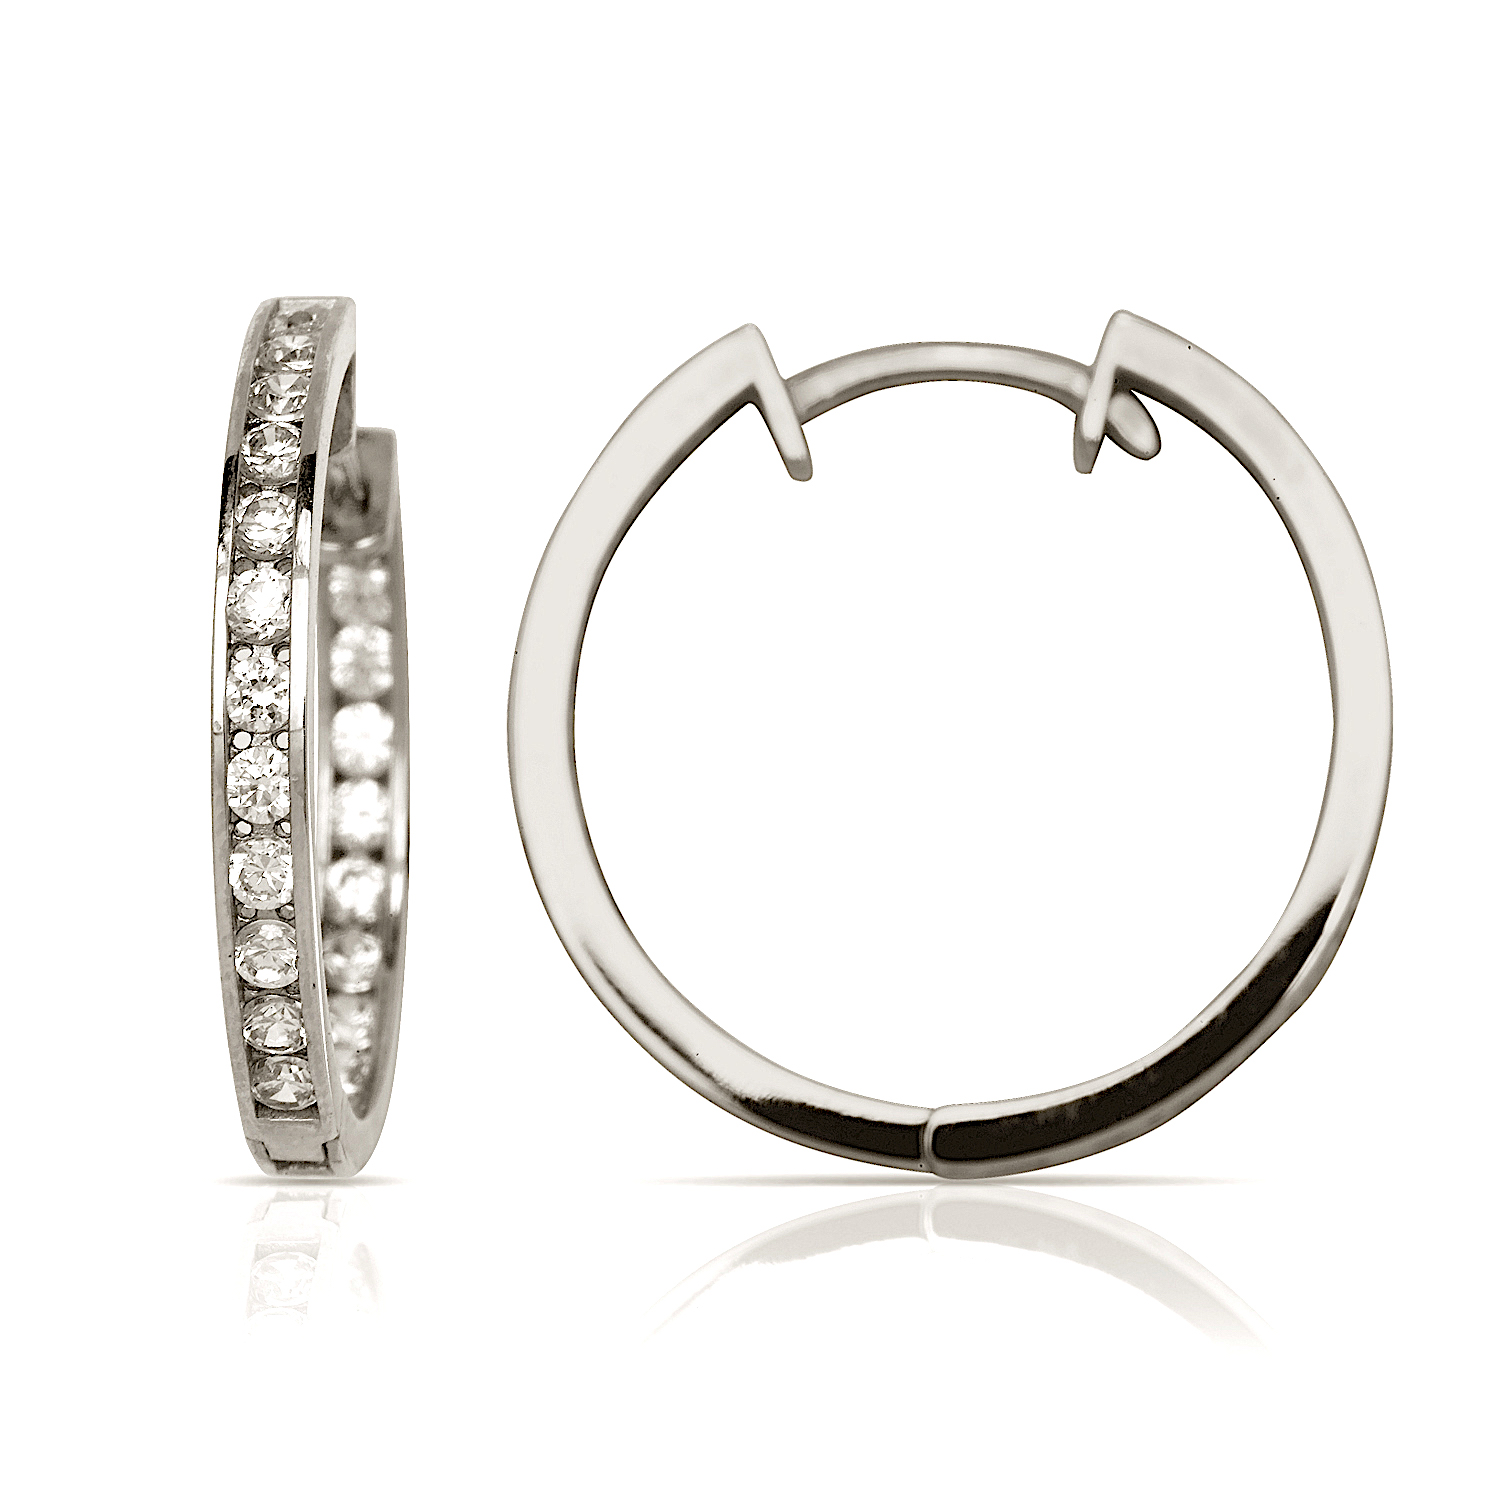 14k White Gold Cubic Zirconia Hoop Hinged Earrings - Measures 20x21mm